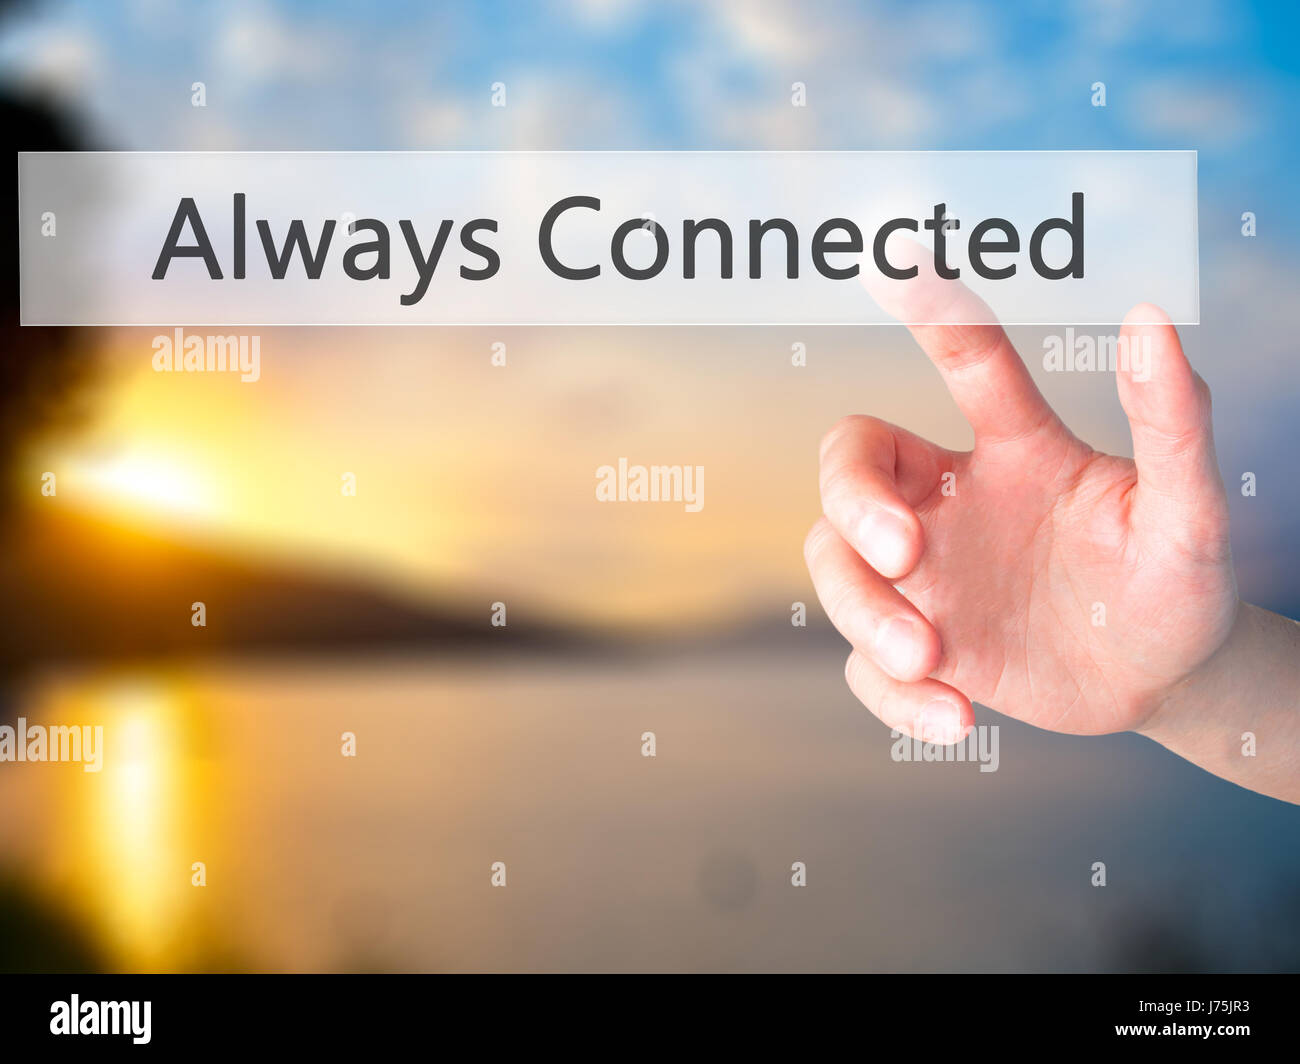 Always Connected- Hand pressing a button on blurred background concept . Business, technology, internet concept. - Stock Image